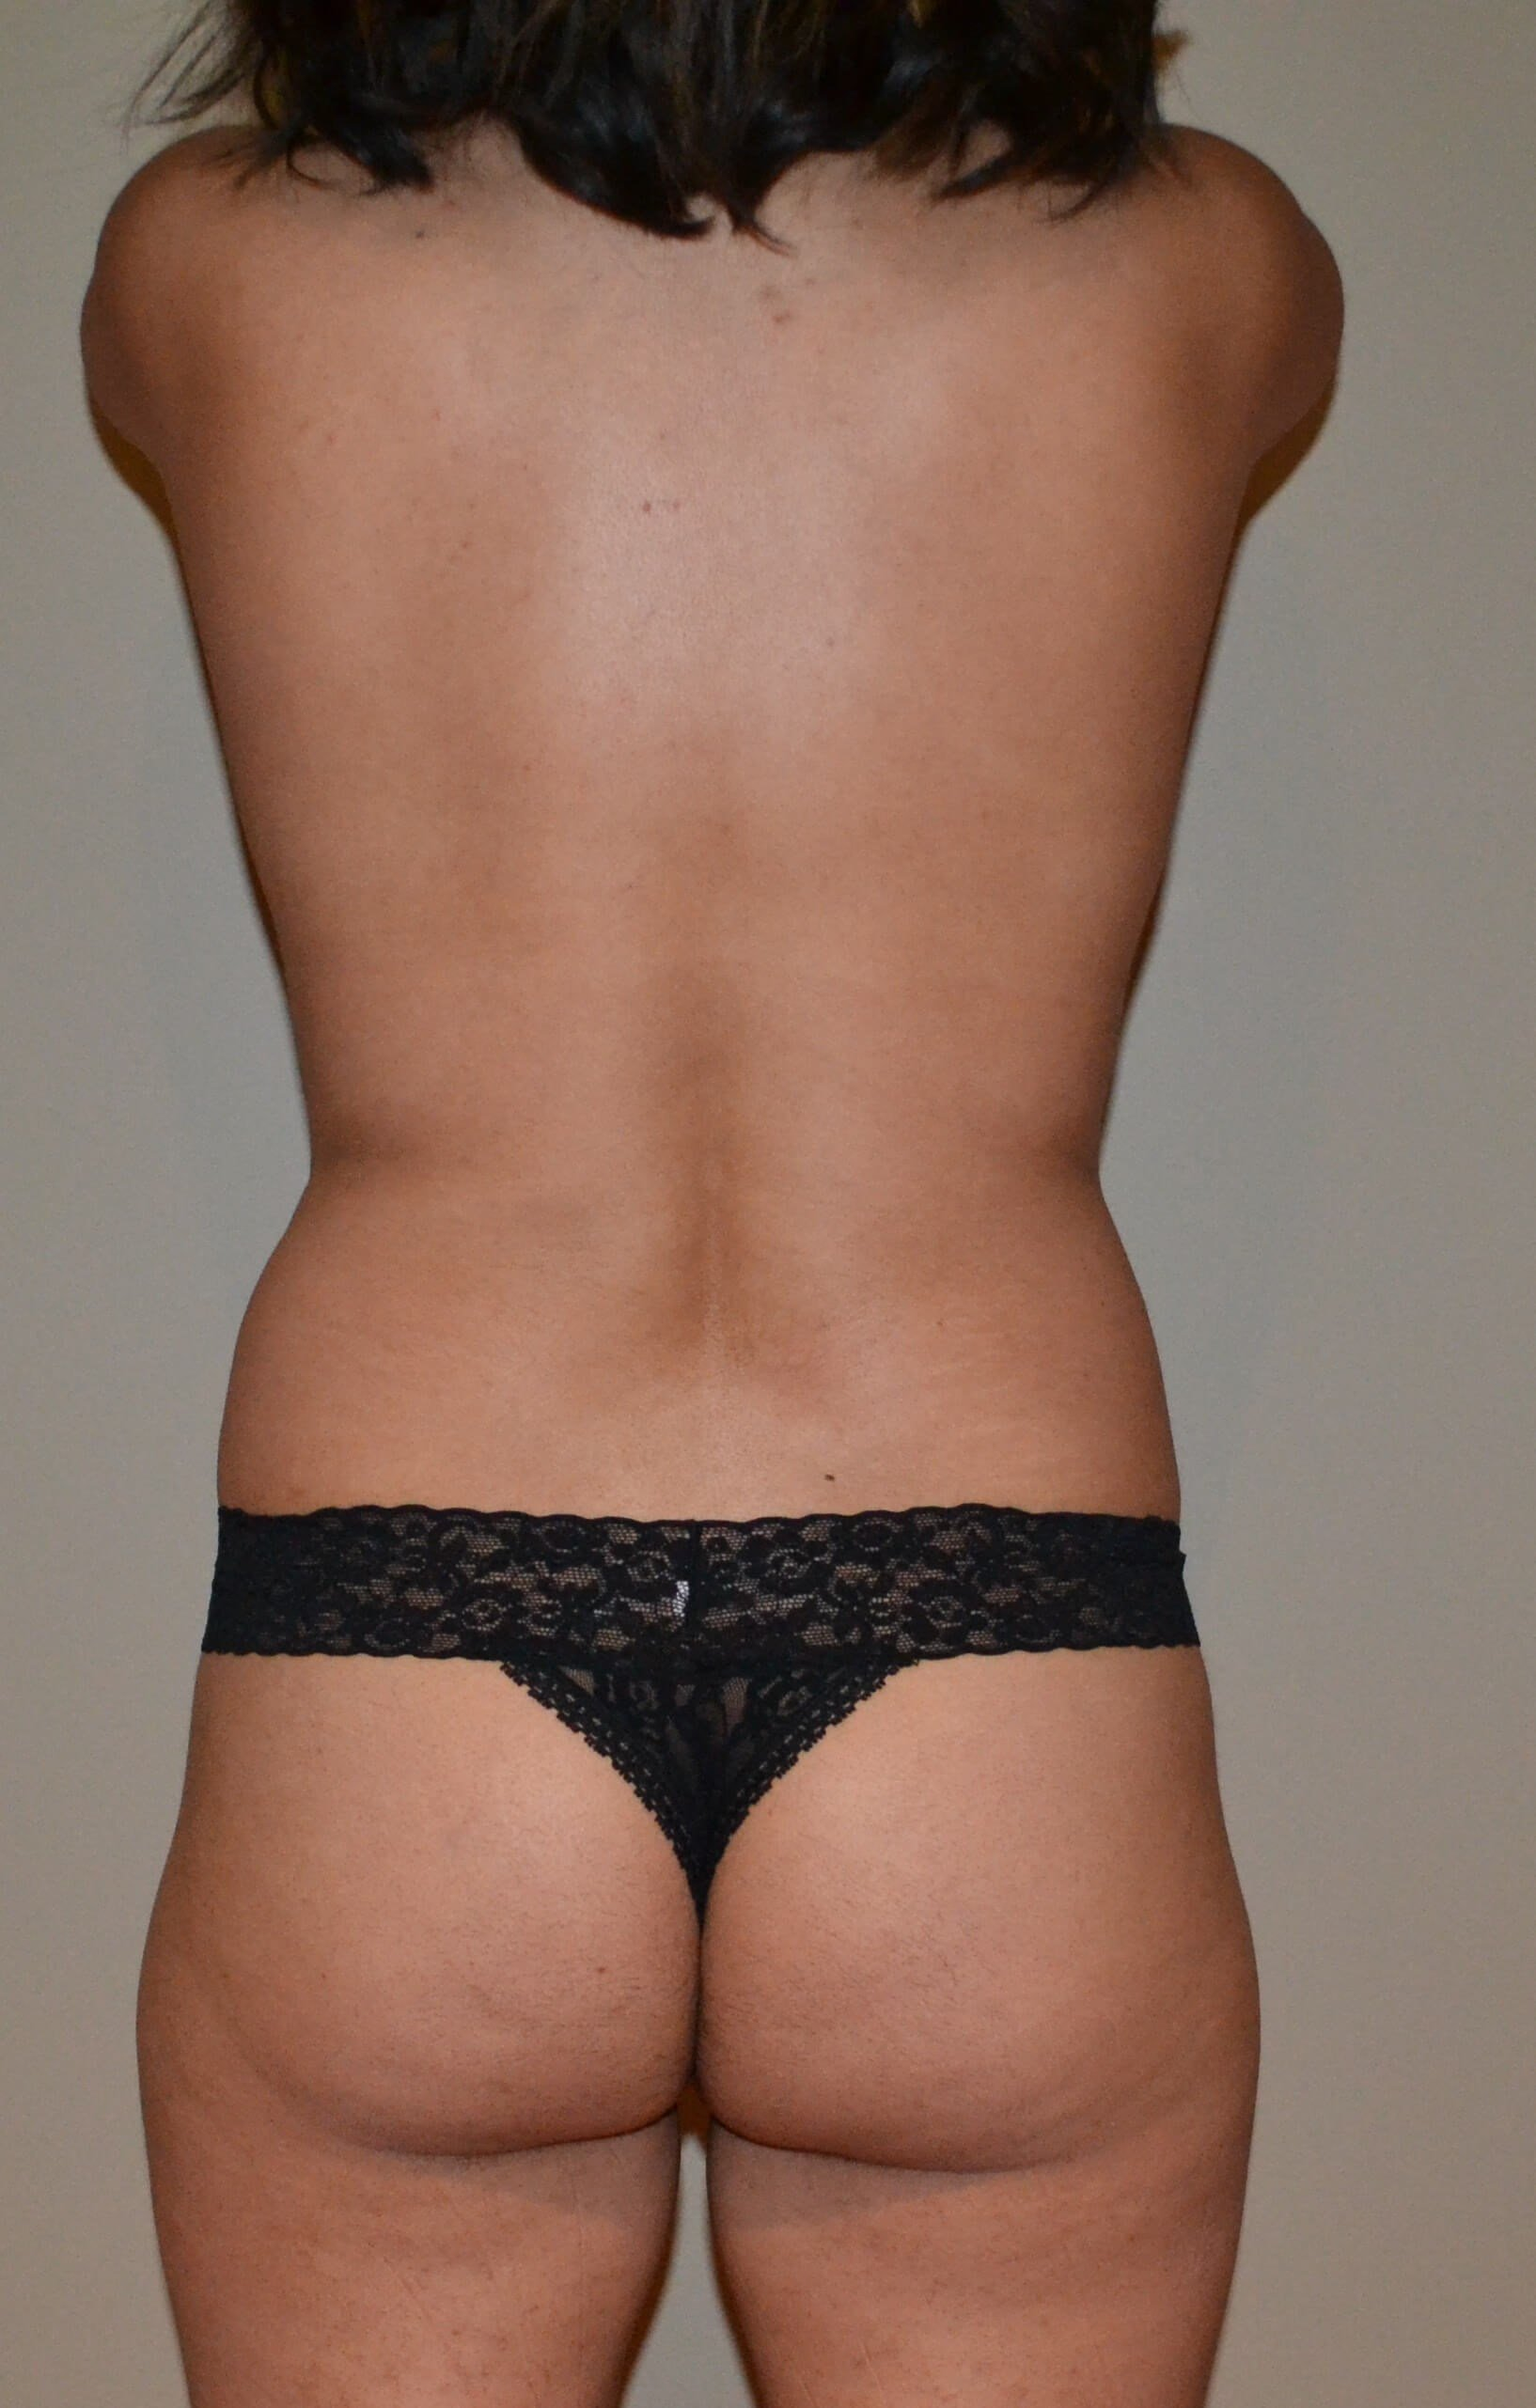 Breast augmentation with fat Before, back view